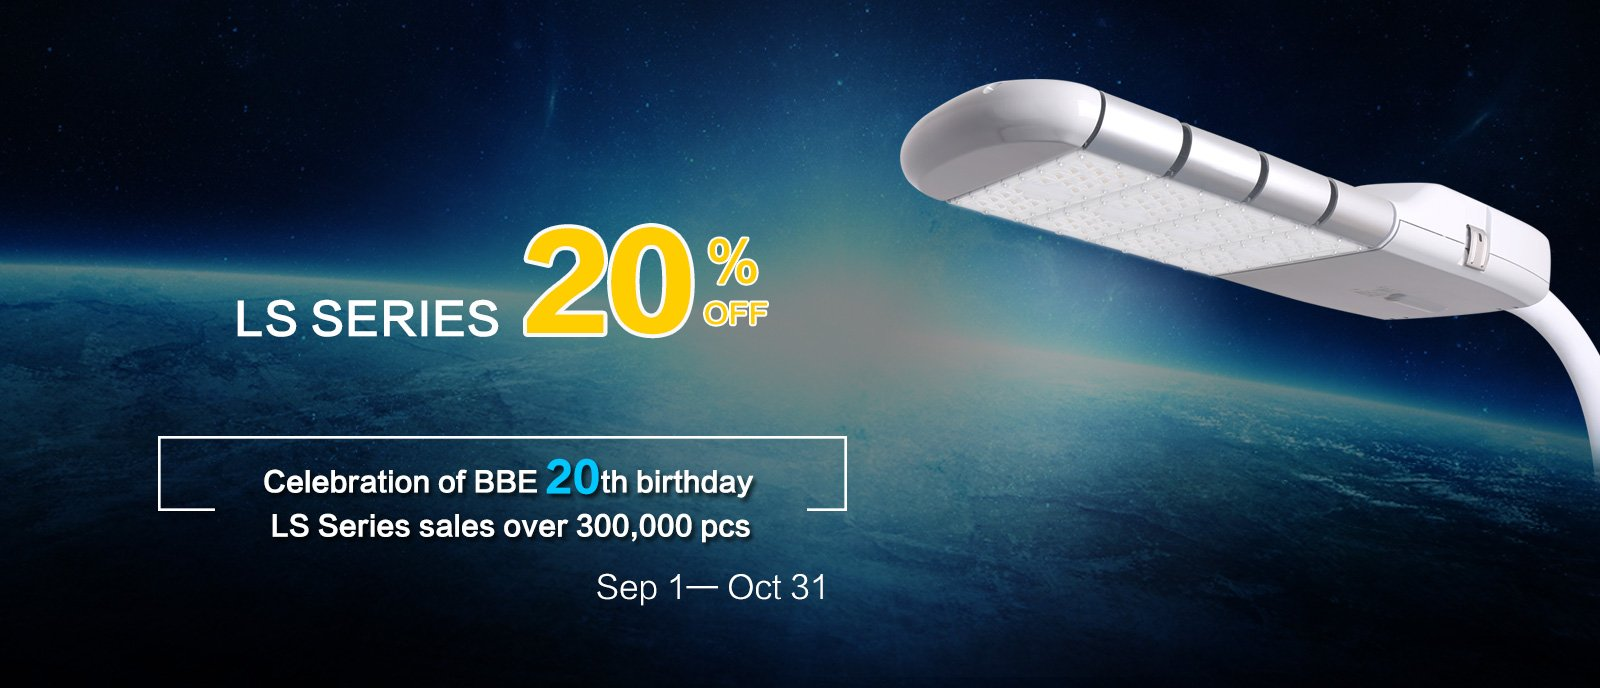 20% off ls led street light